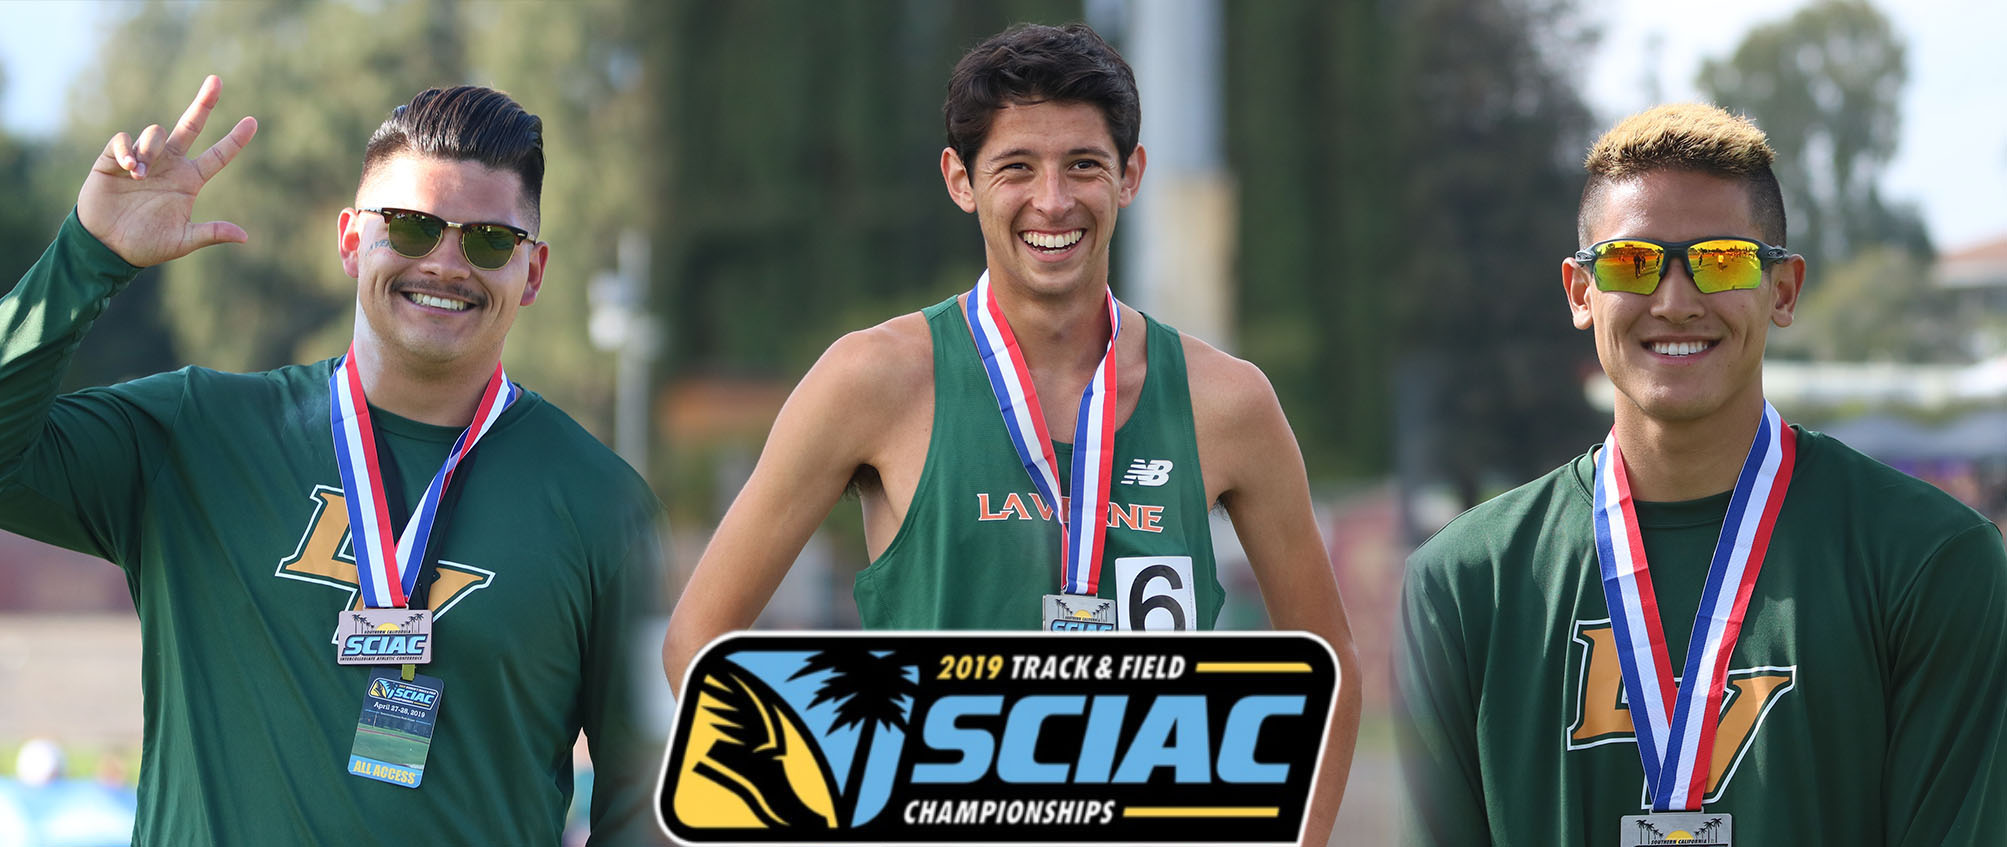 Pedroza, Salas, Ambat podium on final day of SCIACs